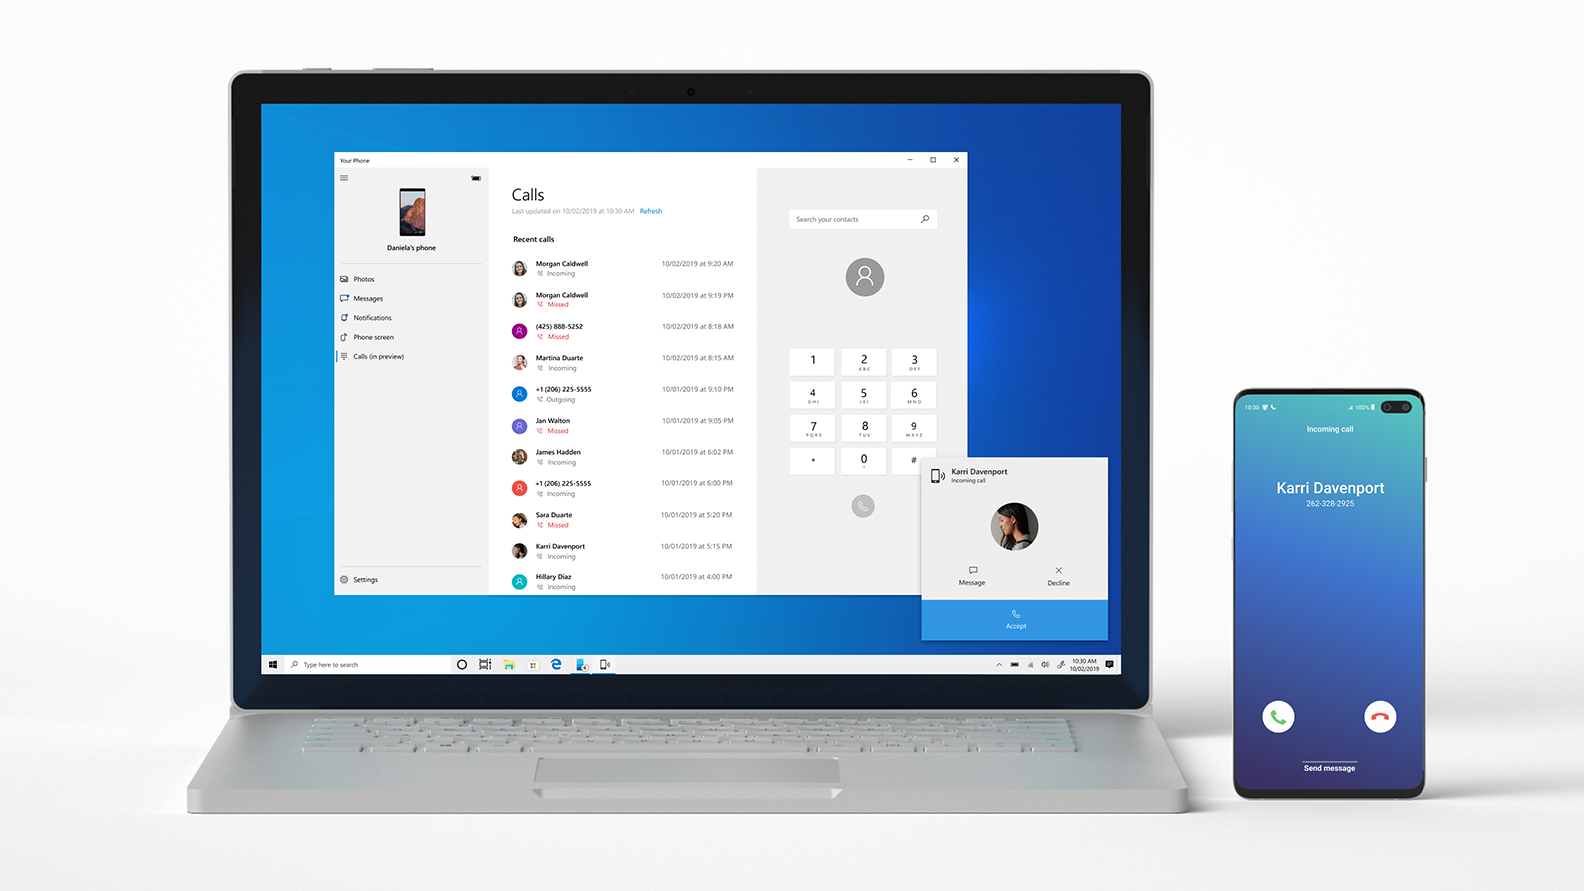 Windows 10 now lets all users make Android phone calls from a PC with Your Phone